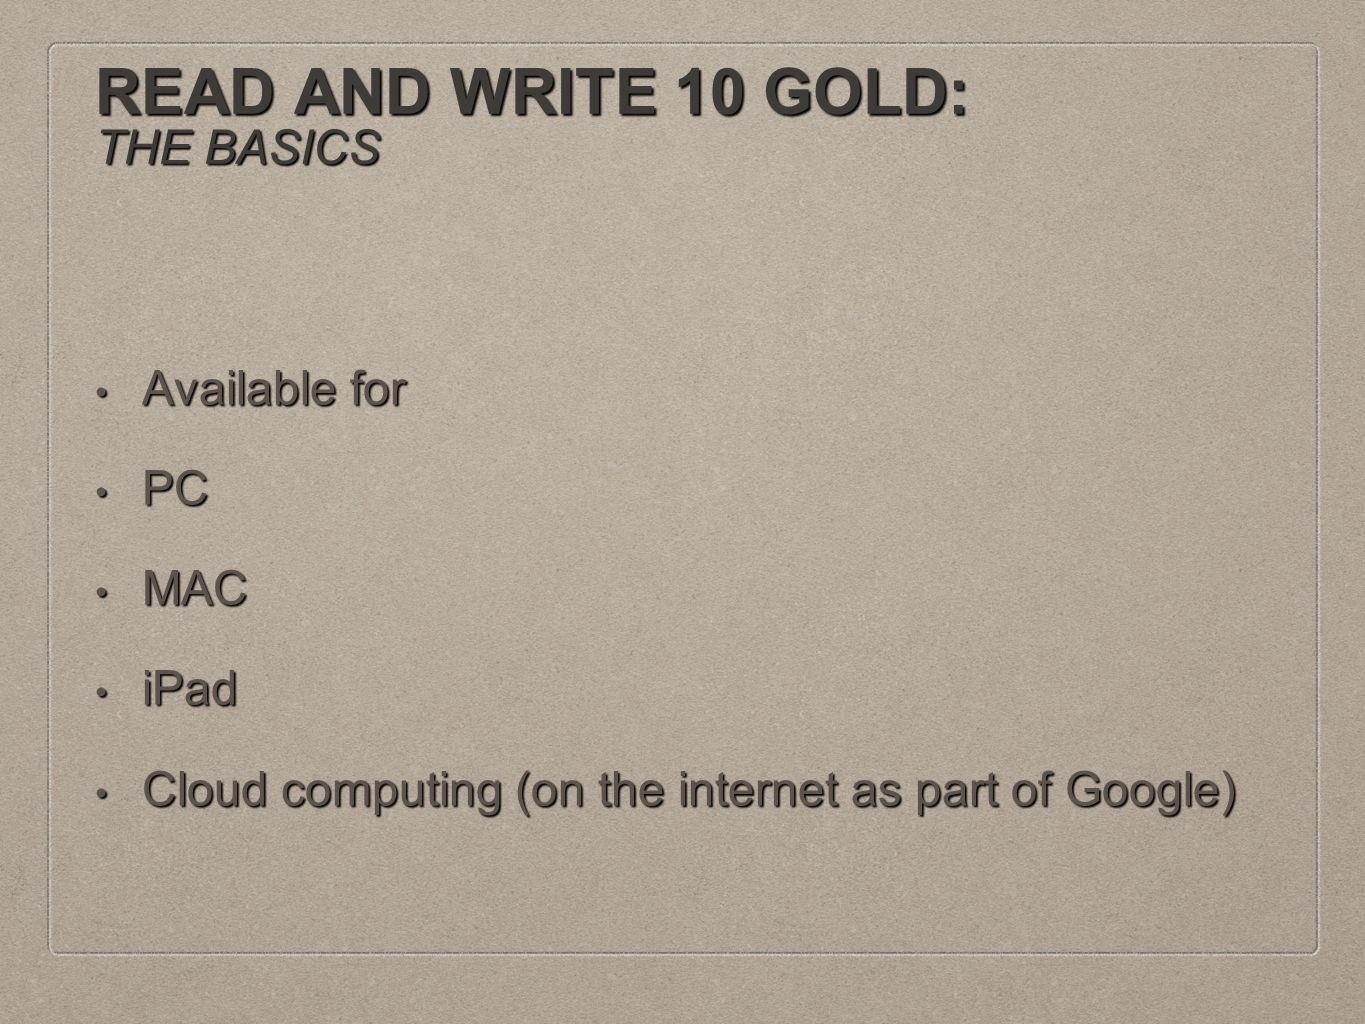 READ AND WRITE 10 GOLD: THE BASICS Available for Available for PC PC MAC MAC iPad iPad Cloud computing (on the internet as part of Google) Cloud computing (on the internet as part of Google)